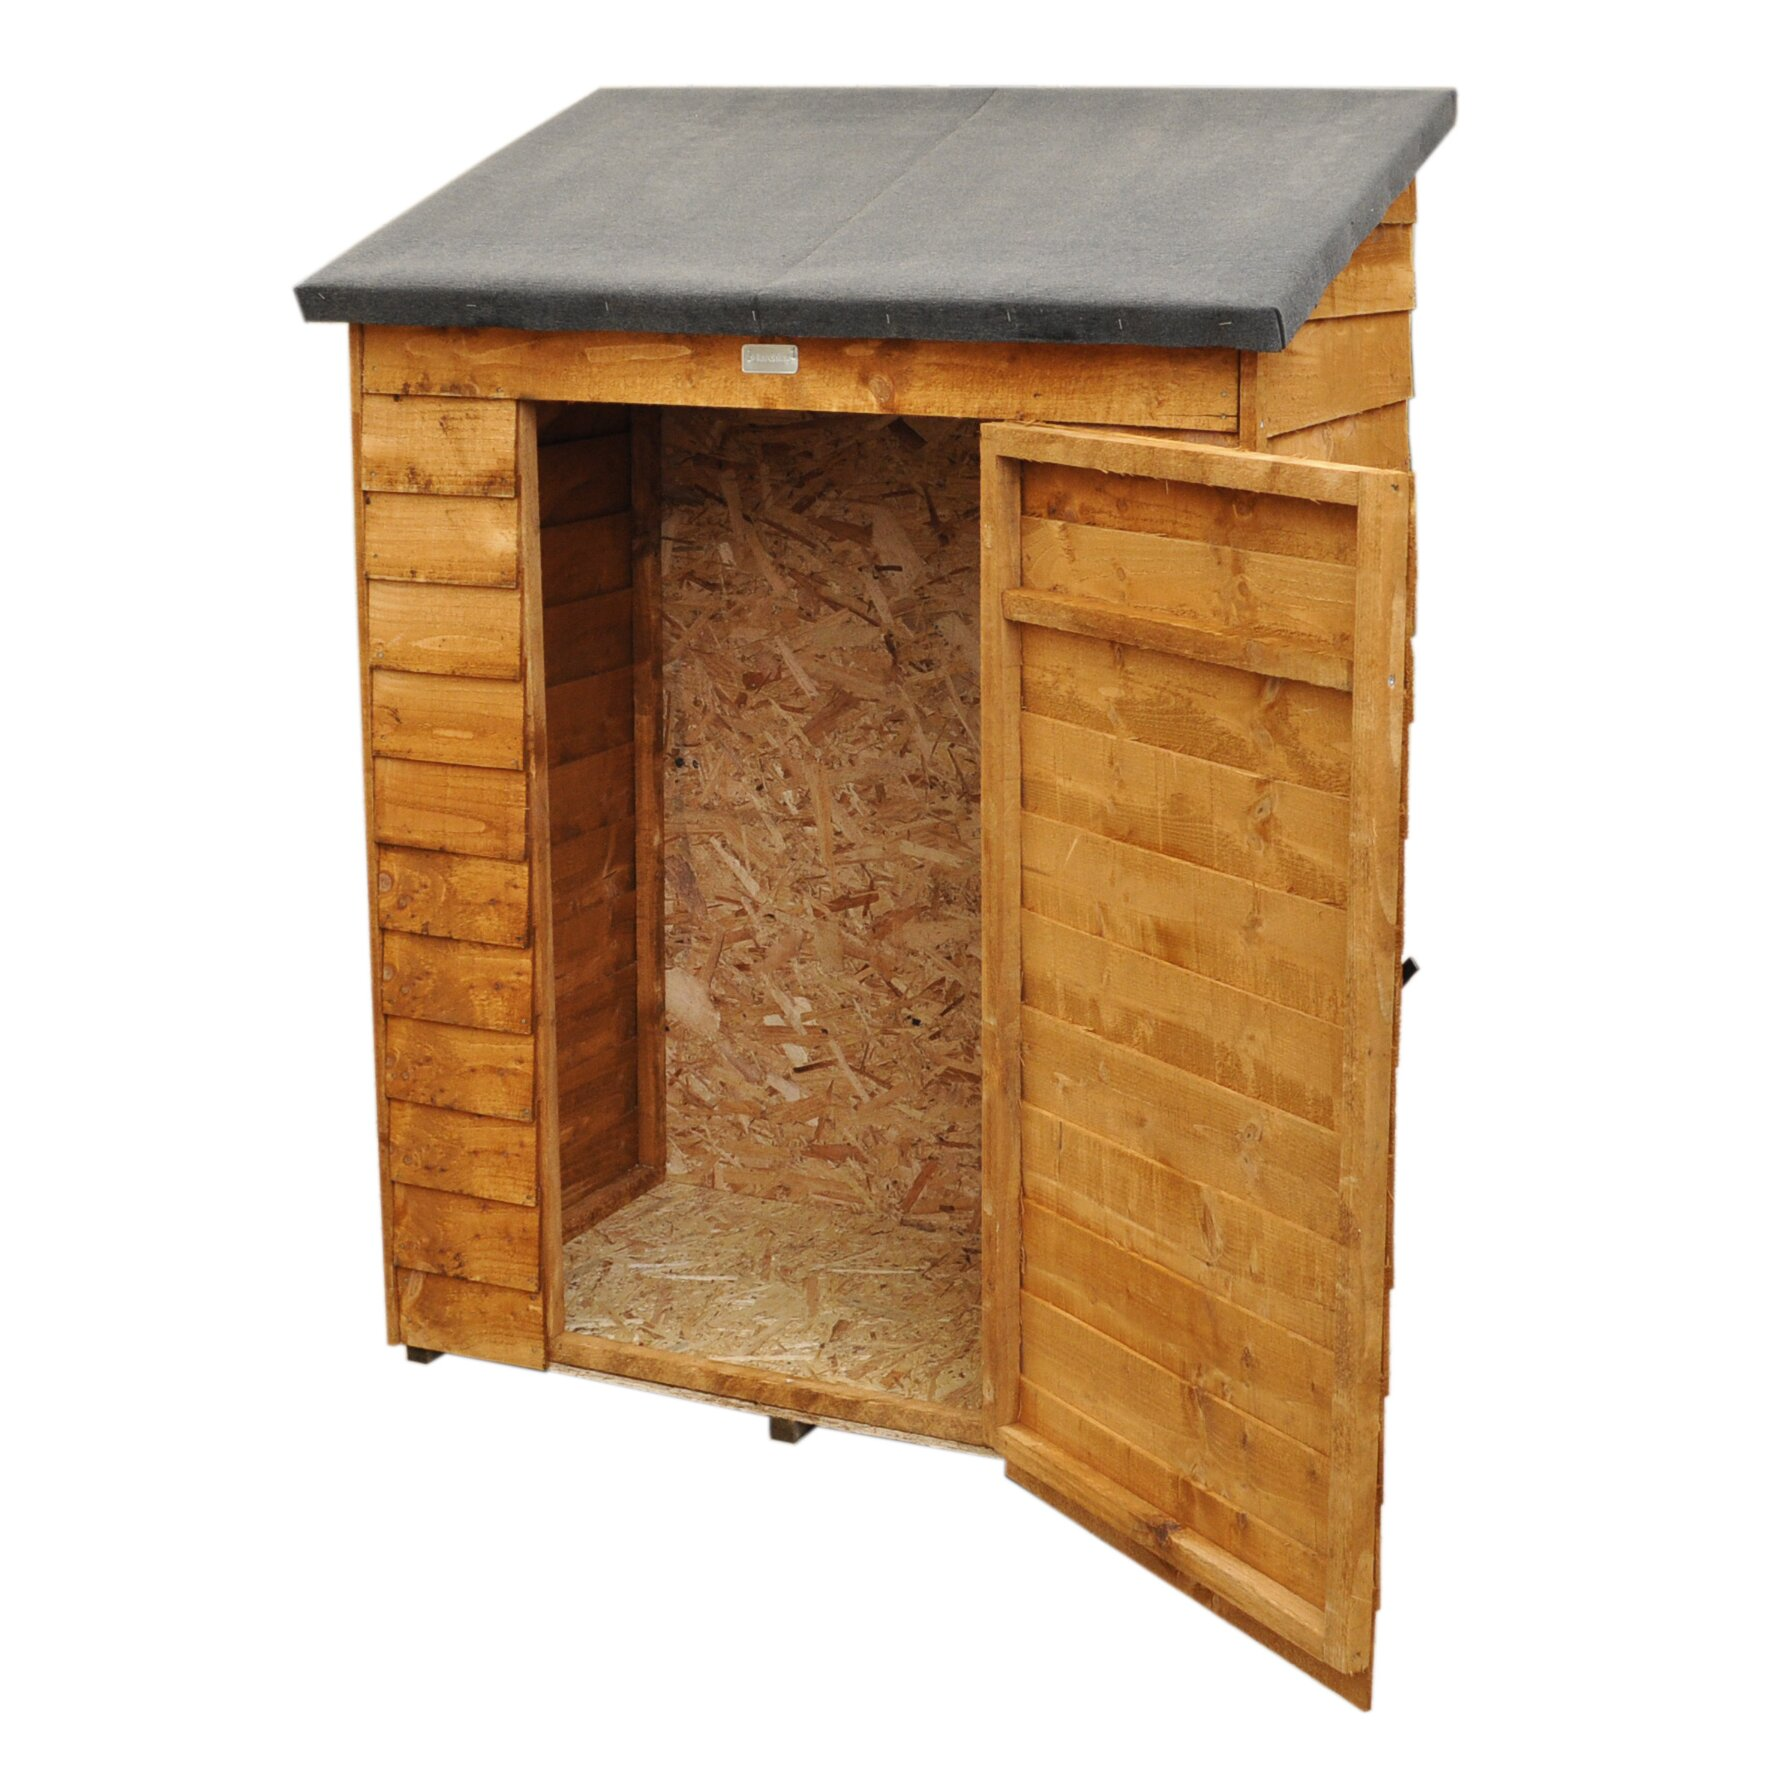 Forest garden 4 x 2 wooden lean to shed reviews for Garden shed 4 x 2